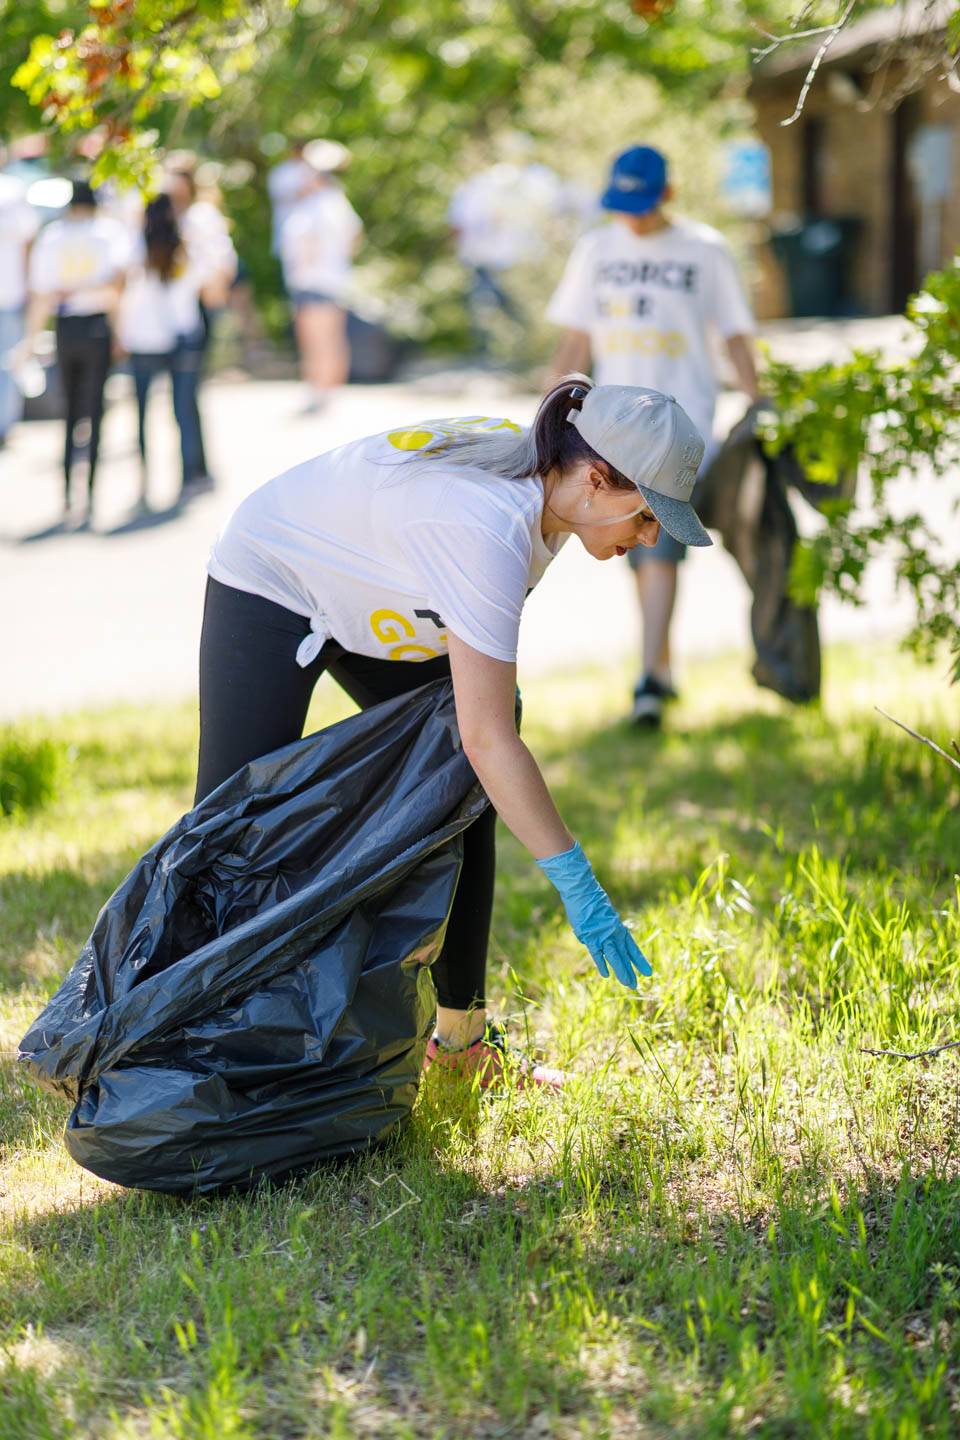 Cleaning up trash and weeds